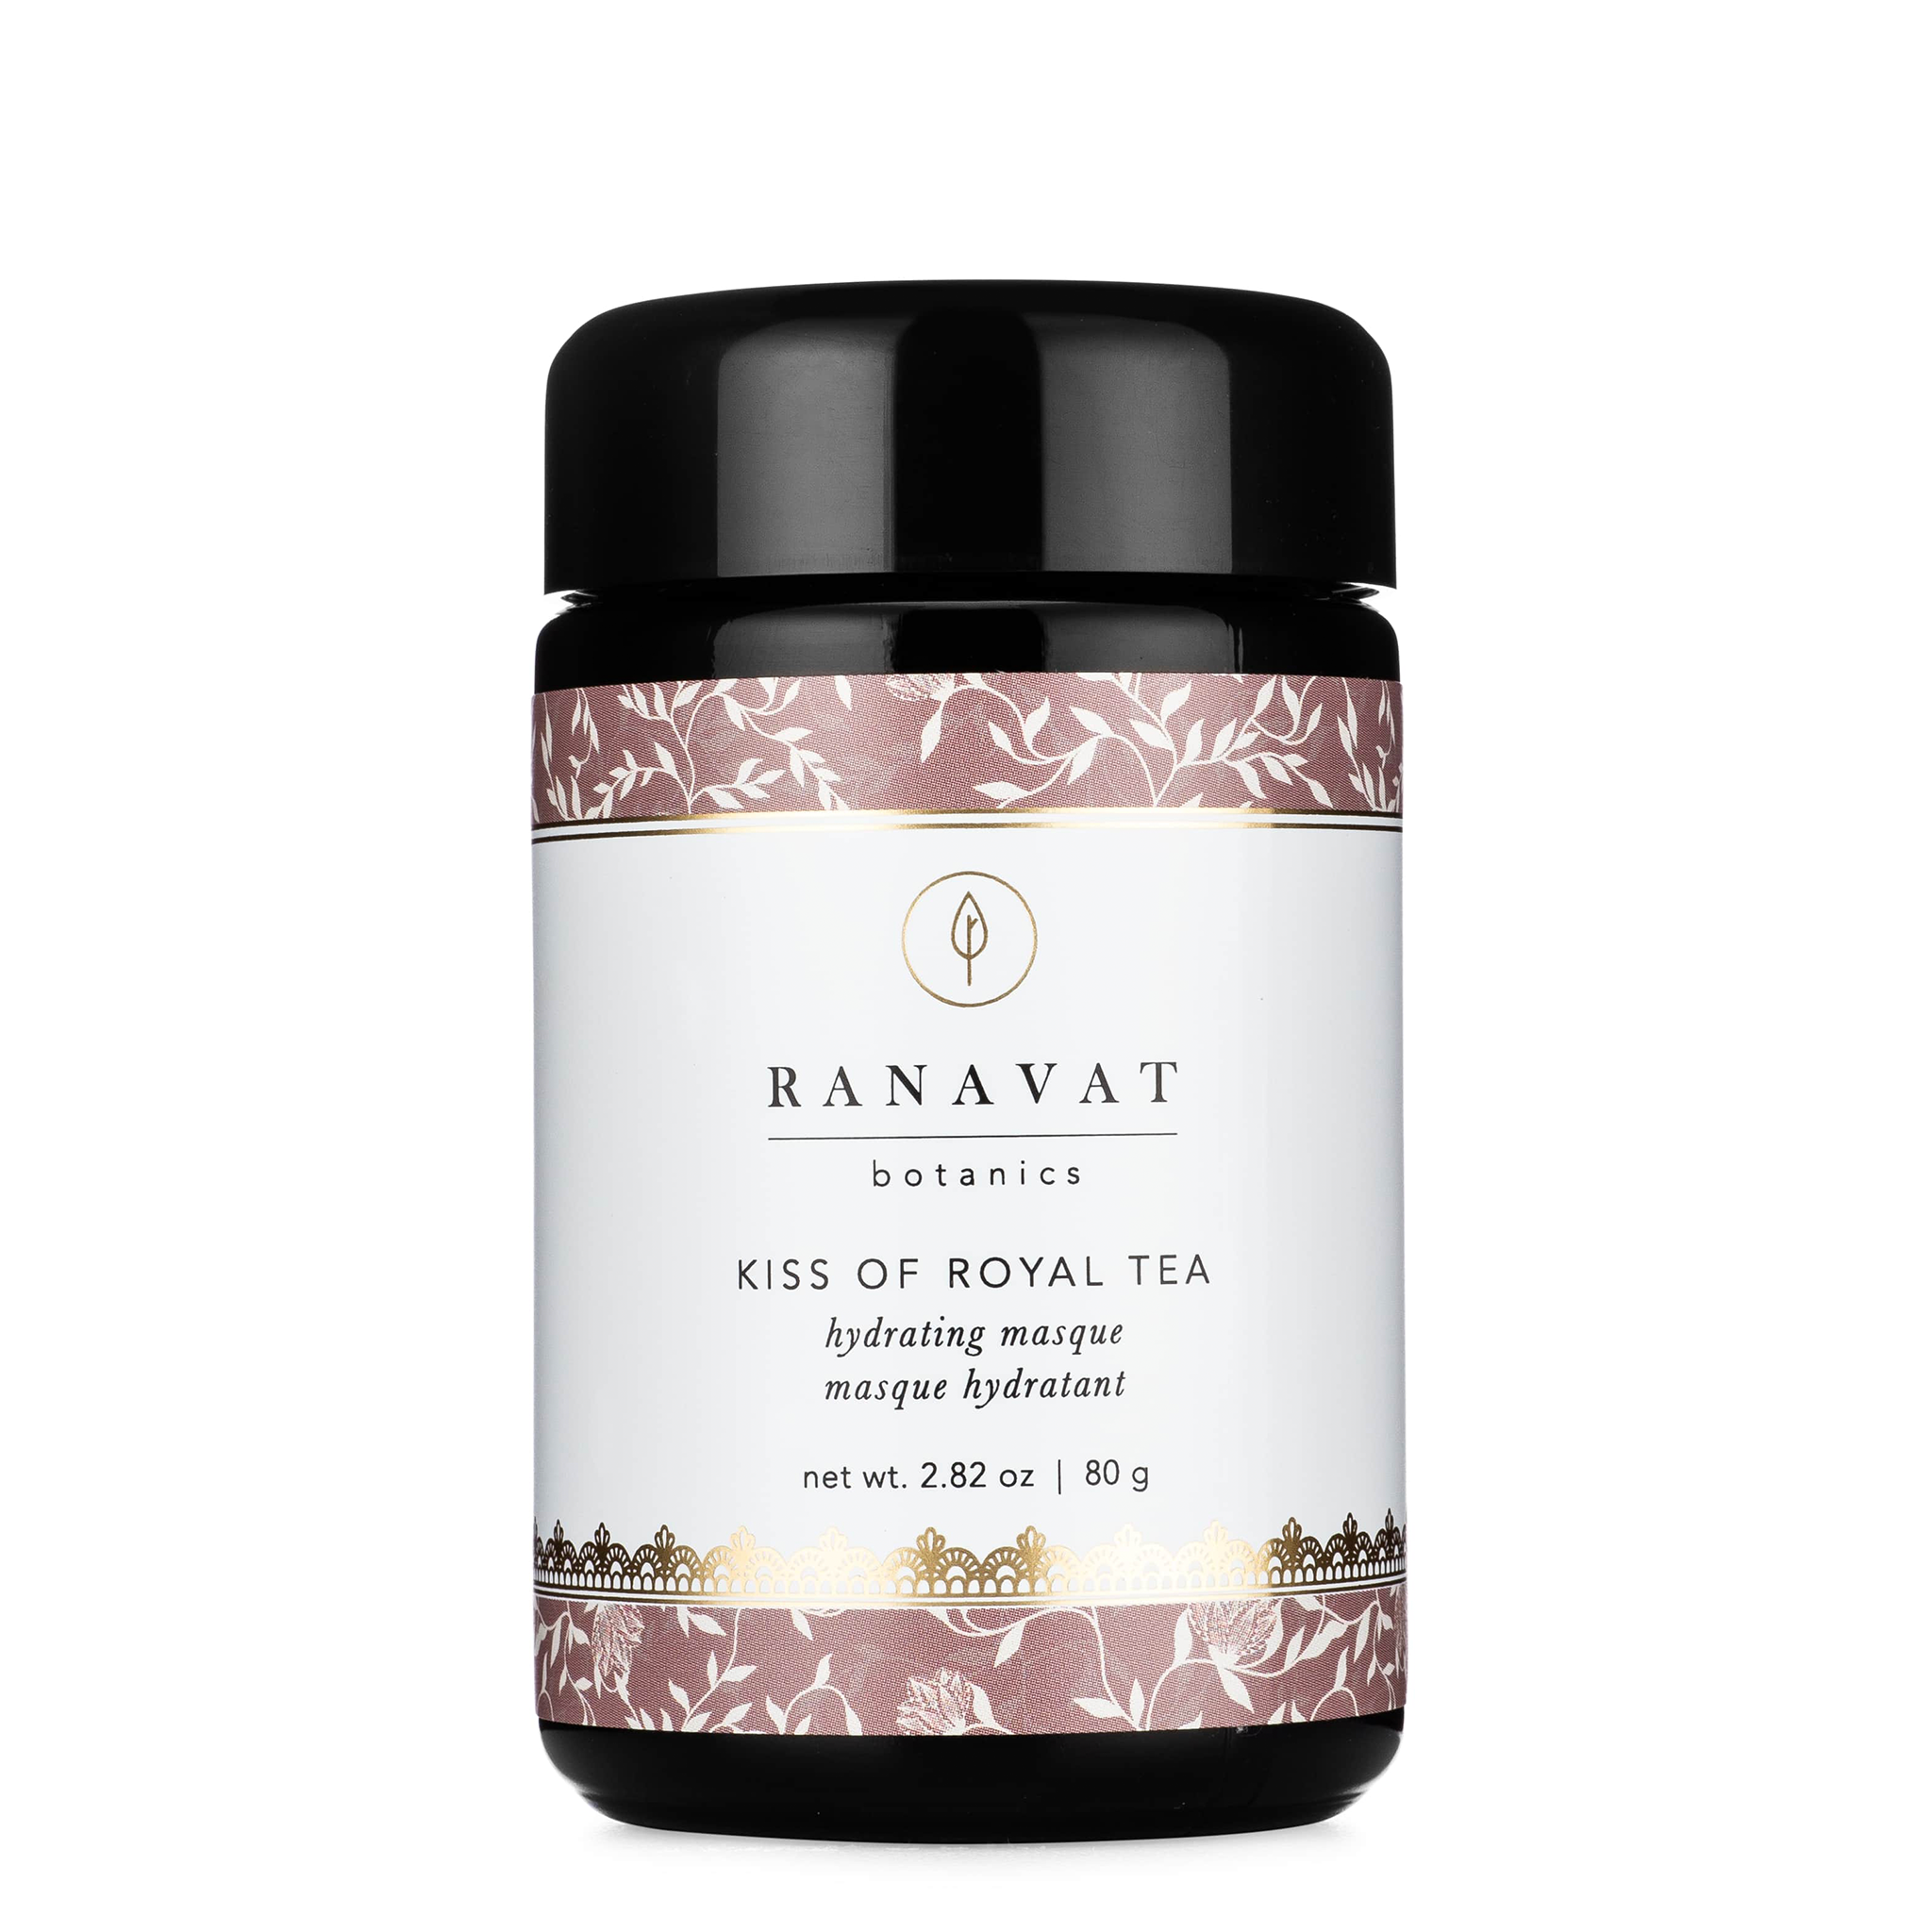 Kiss of Royal Tea Hydrating Masque